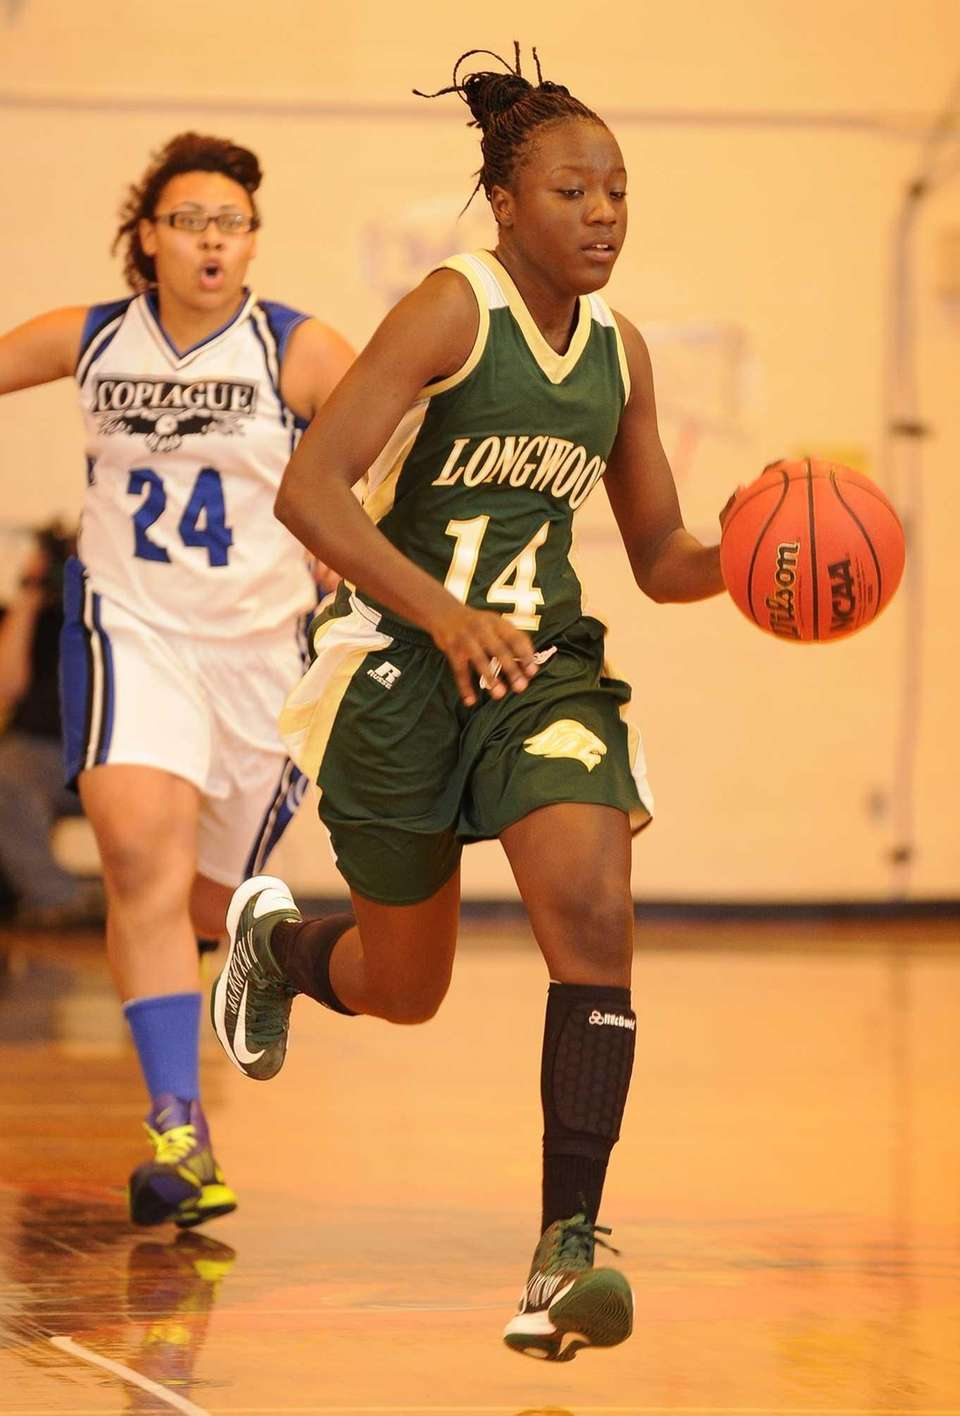 Longwood's Kiersten West drives the ball against Copiague